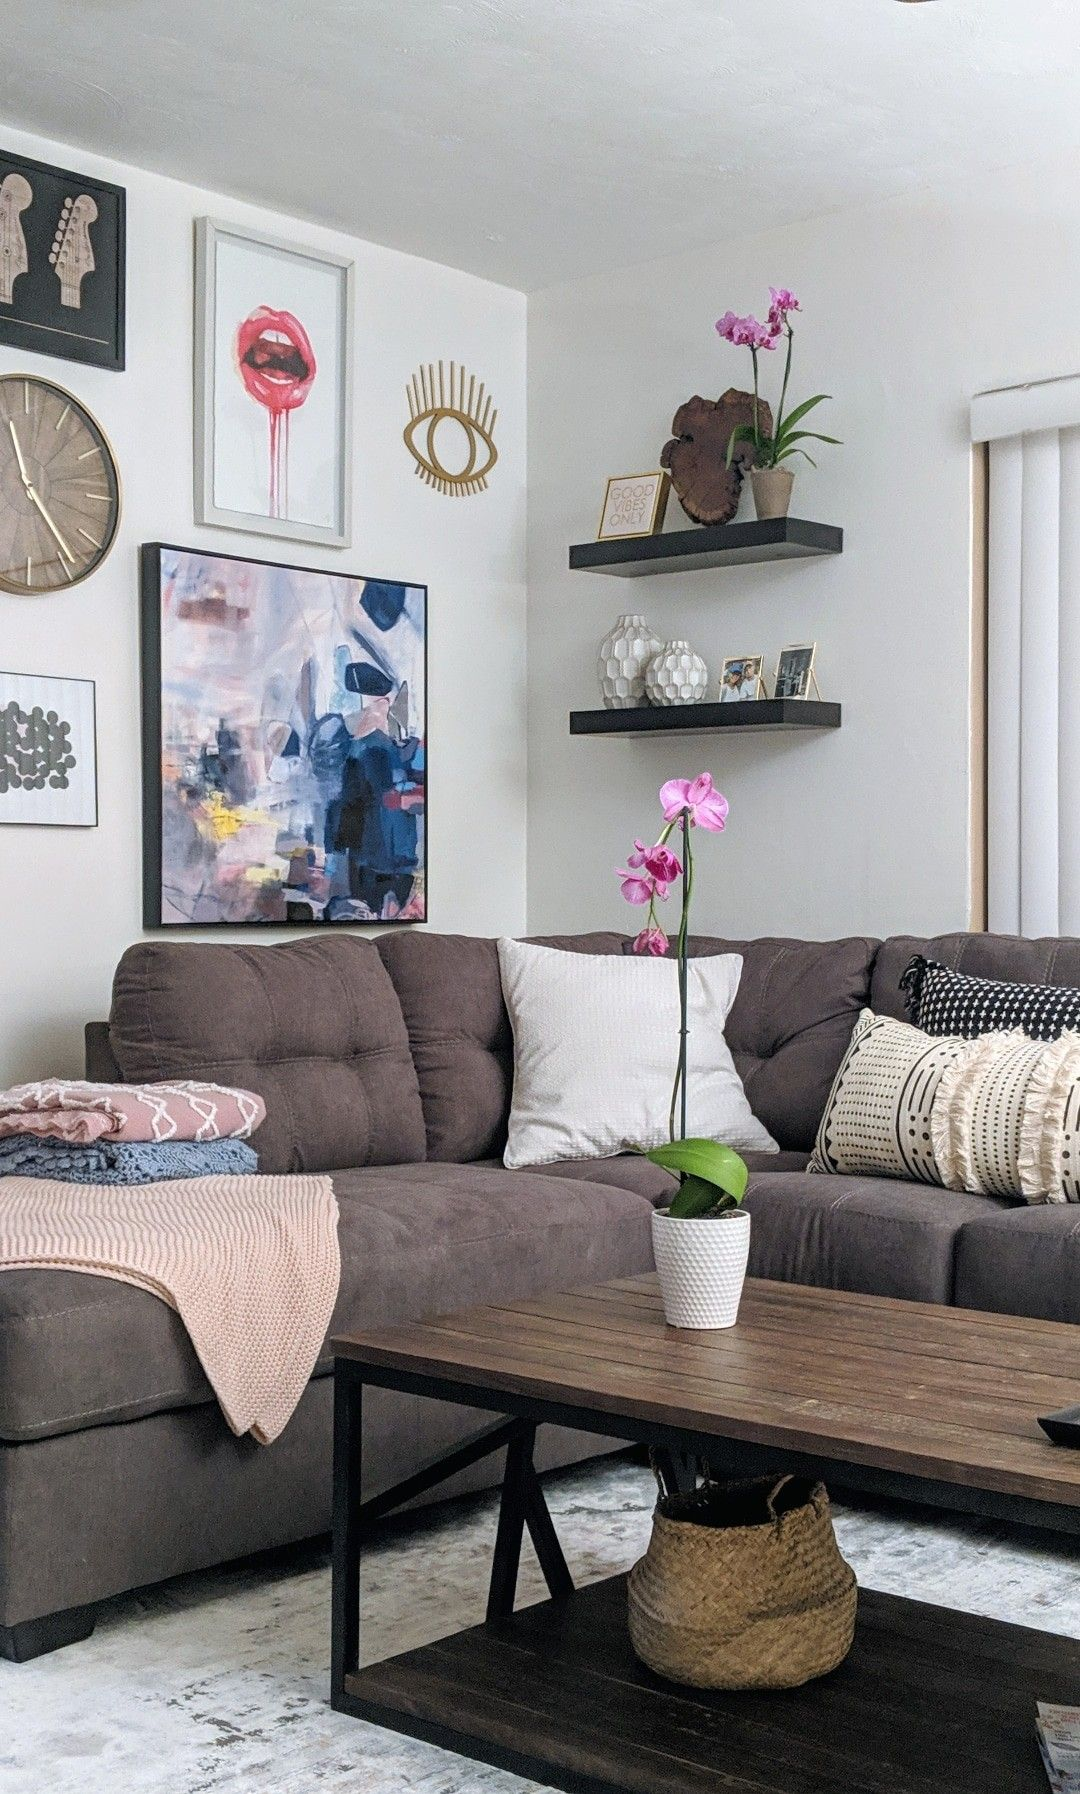 Gallery wall | Living room inspo, Outdoor furniture sets ... on Patio Living Room Set id=42967